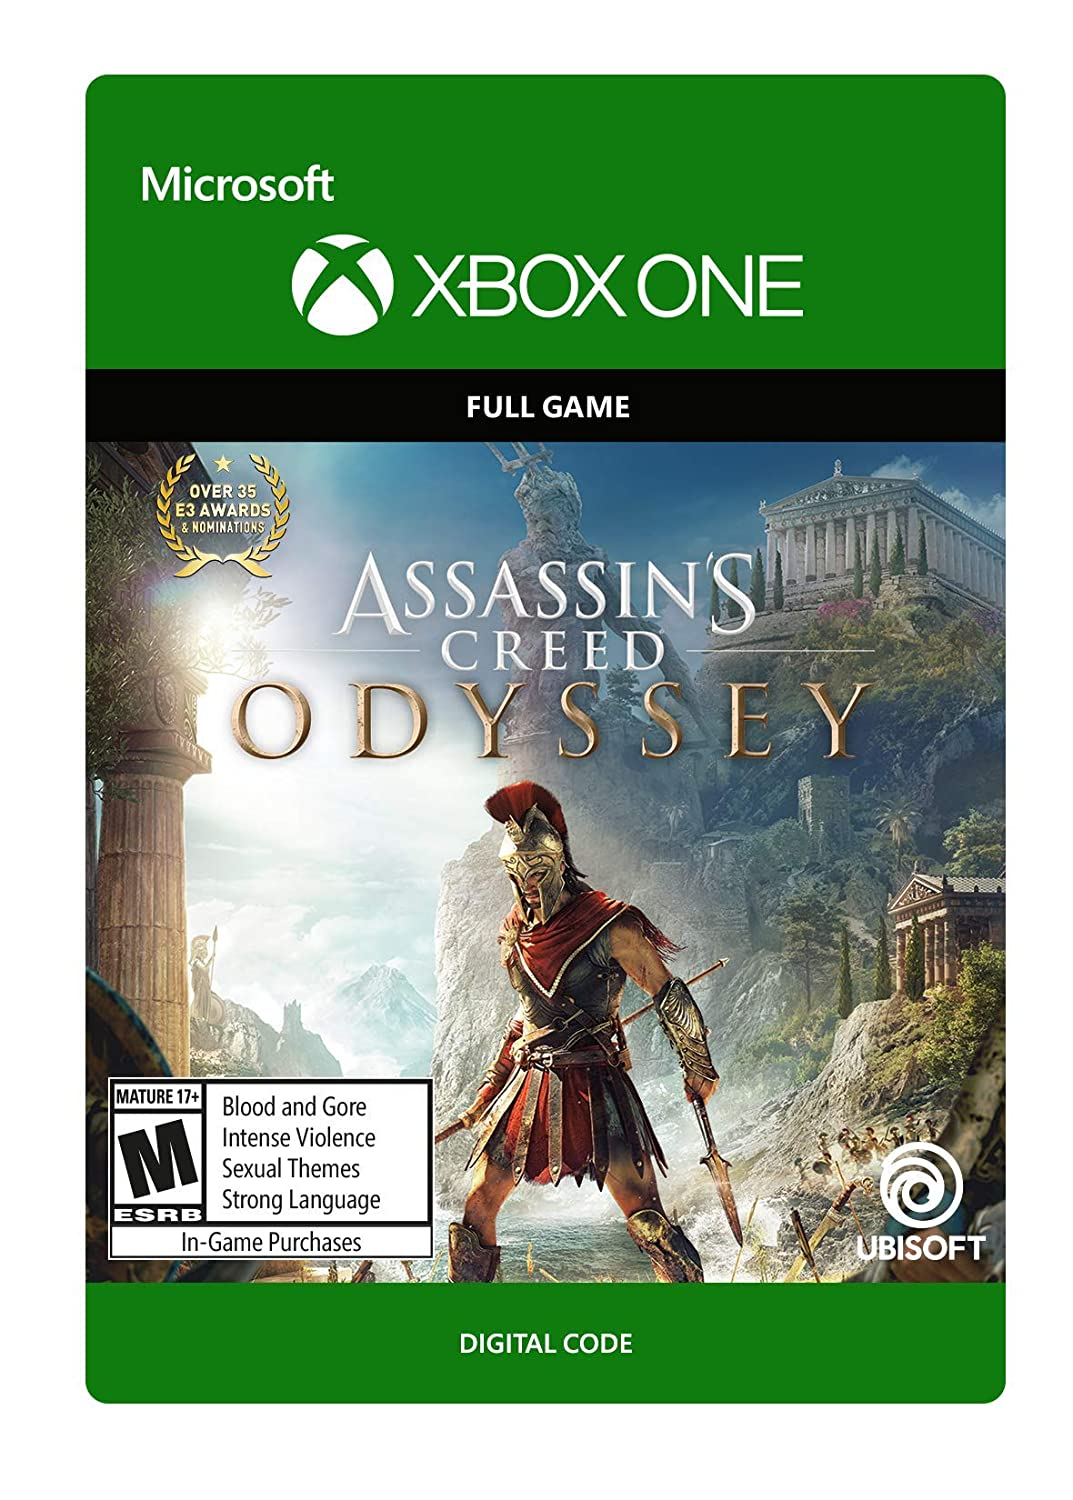 Up to 85% off Assassin's Creed Odyssey, Shadow of the Tomb Raider and Sleeping Dogs on Xbox One